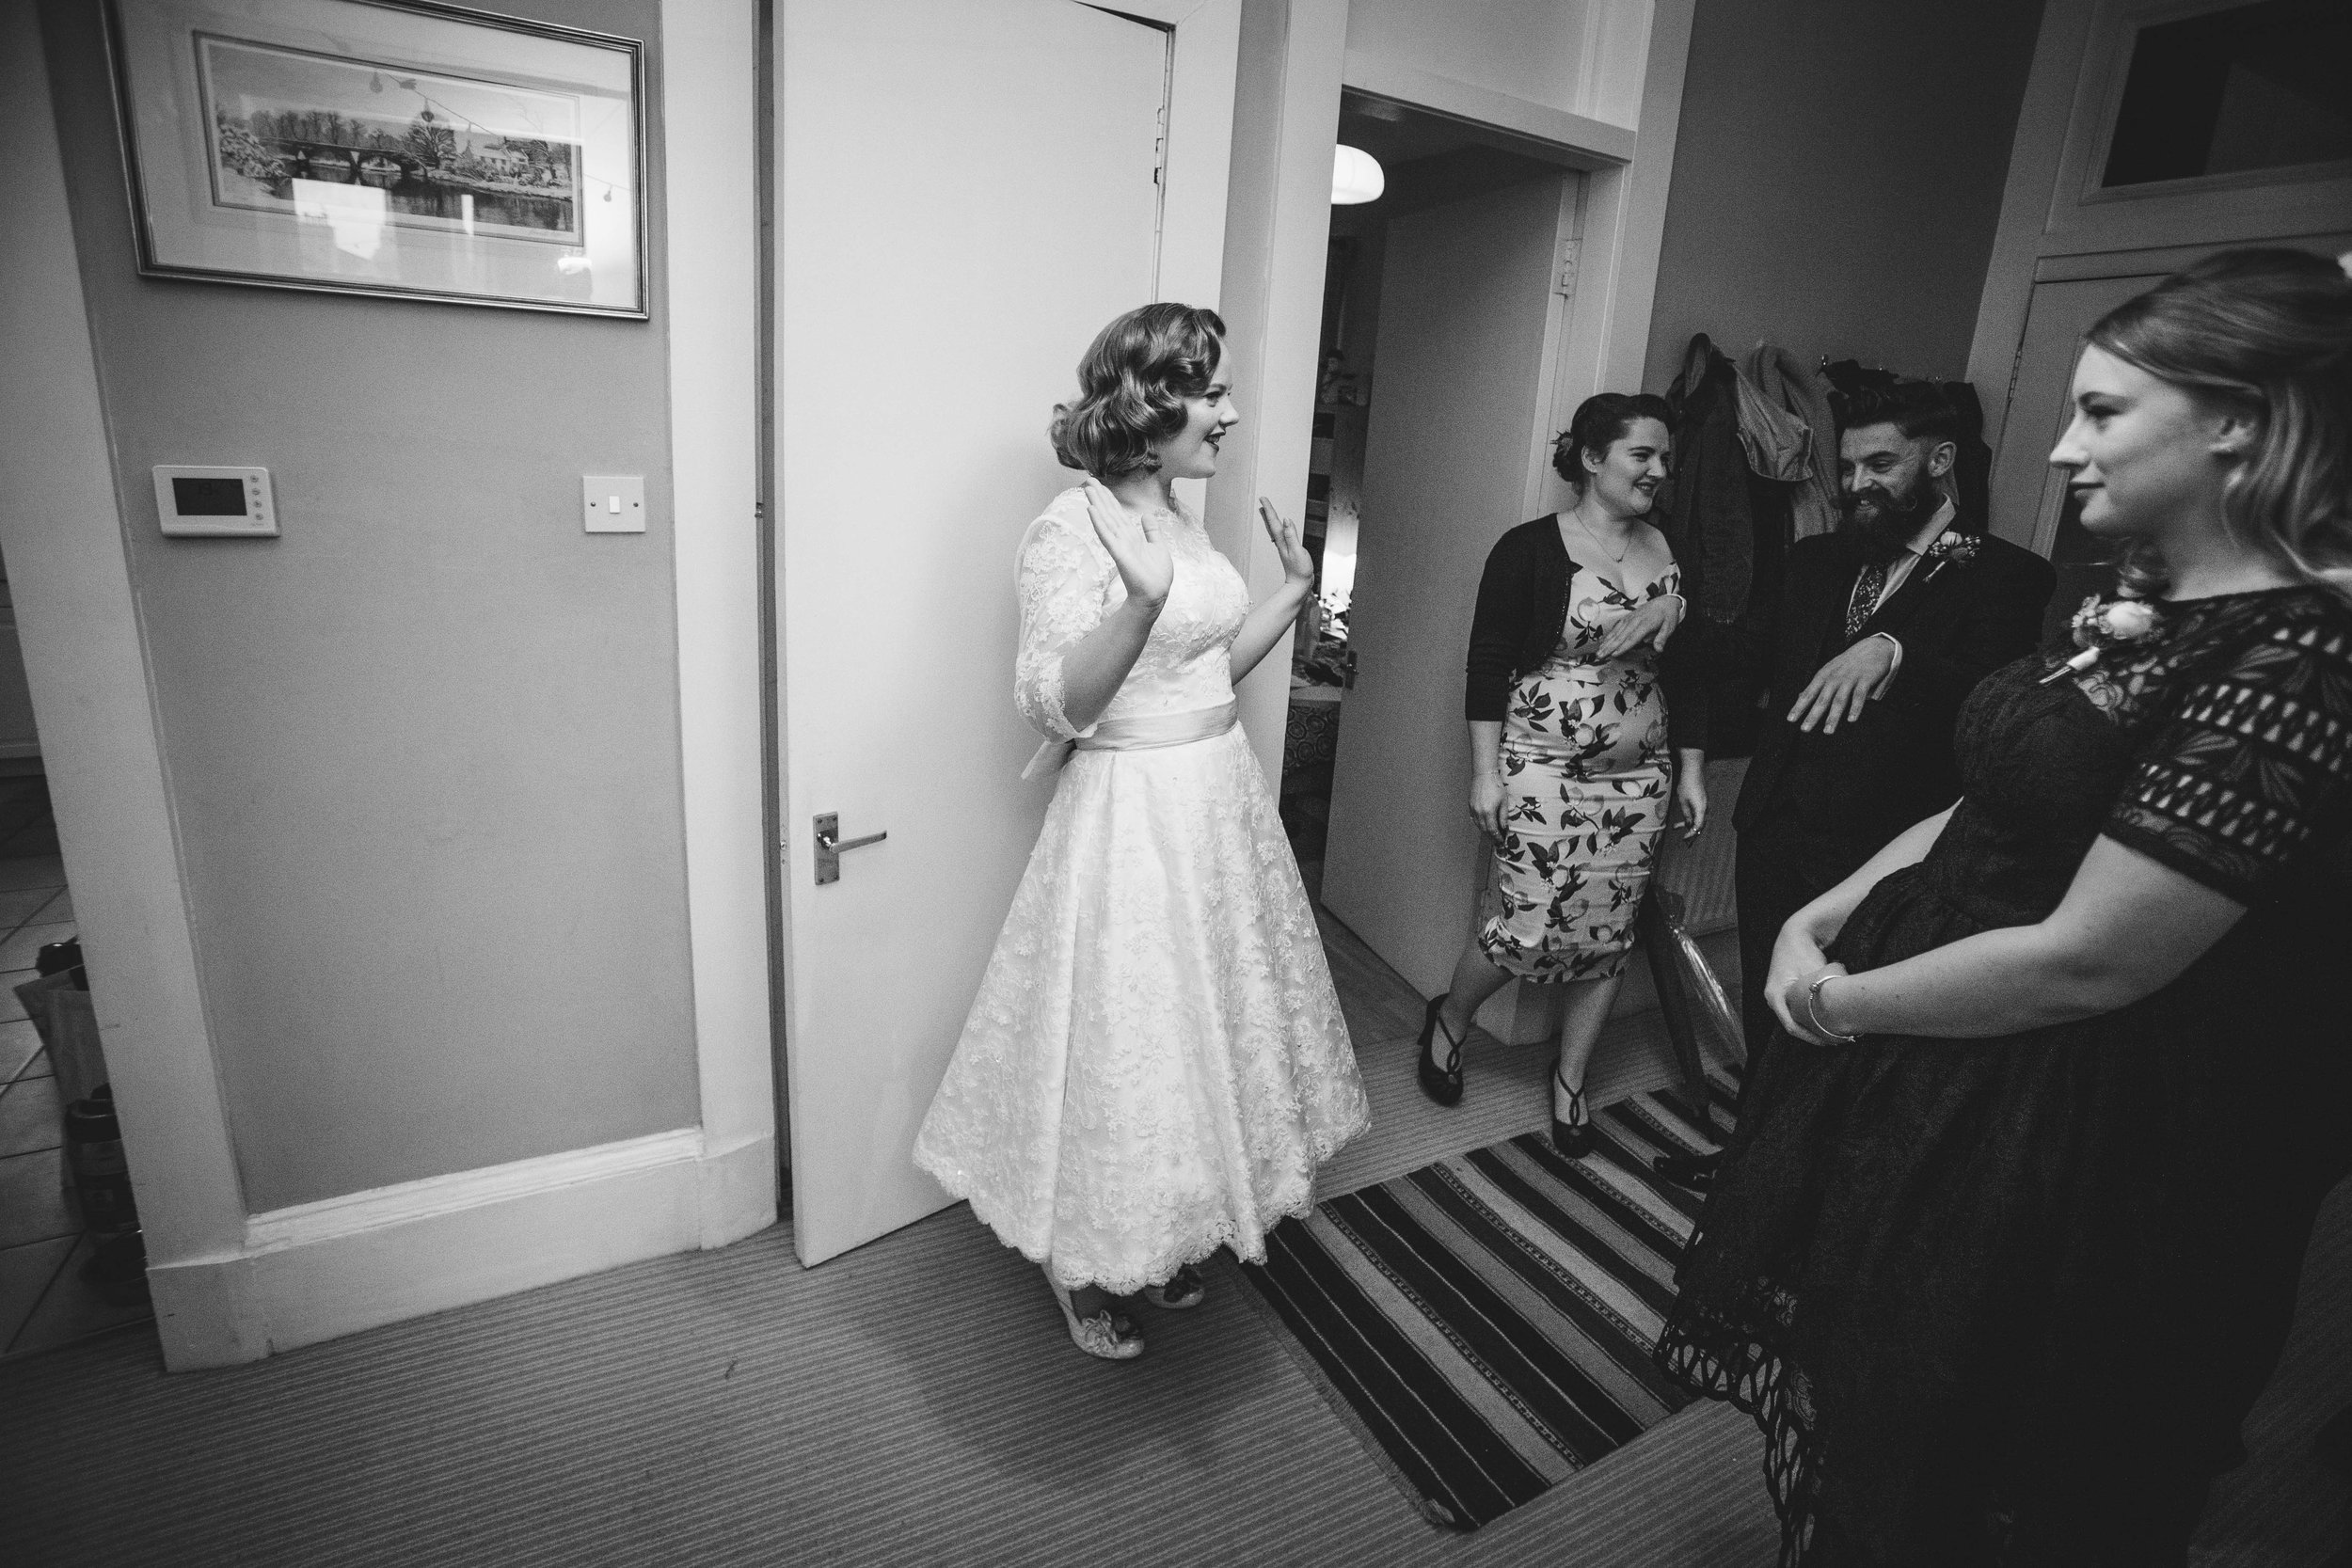 Sophie & Graeme Wedding Nov 2018  065  web.JPG